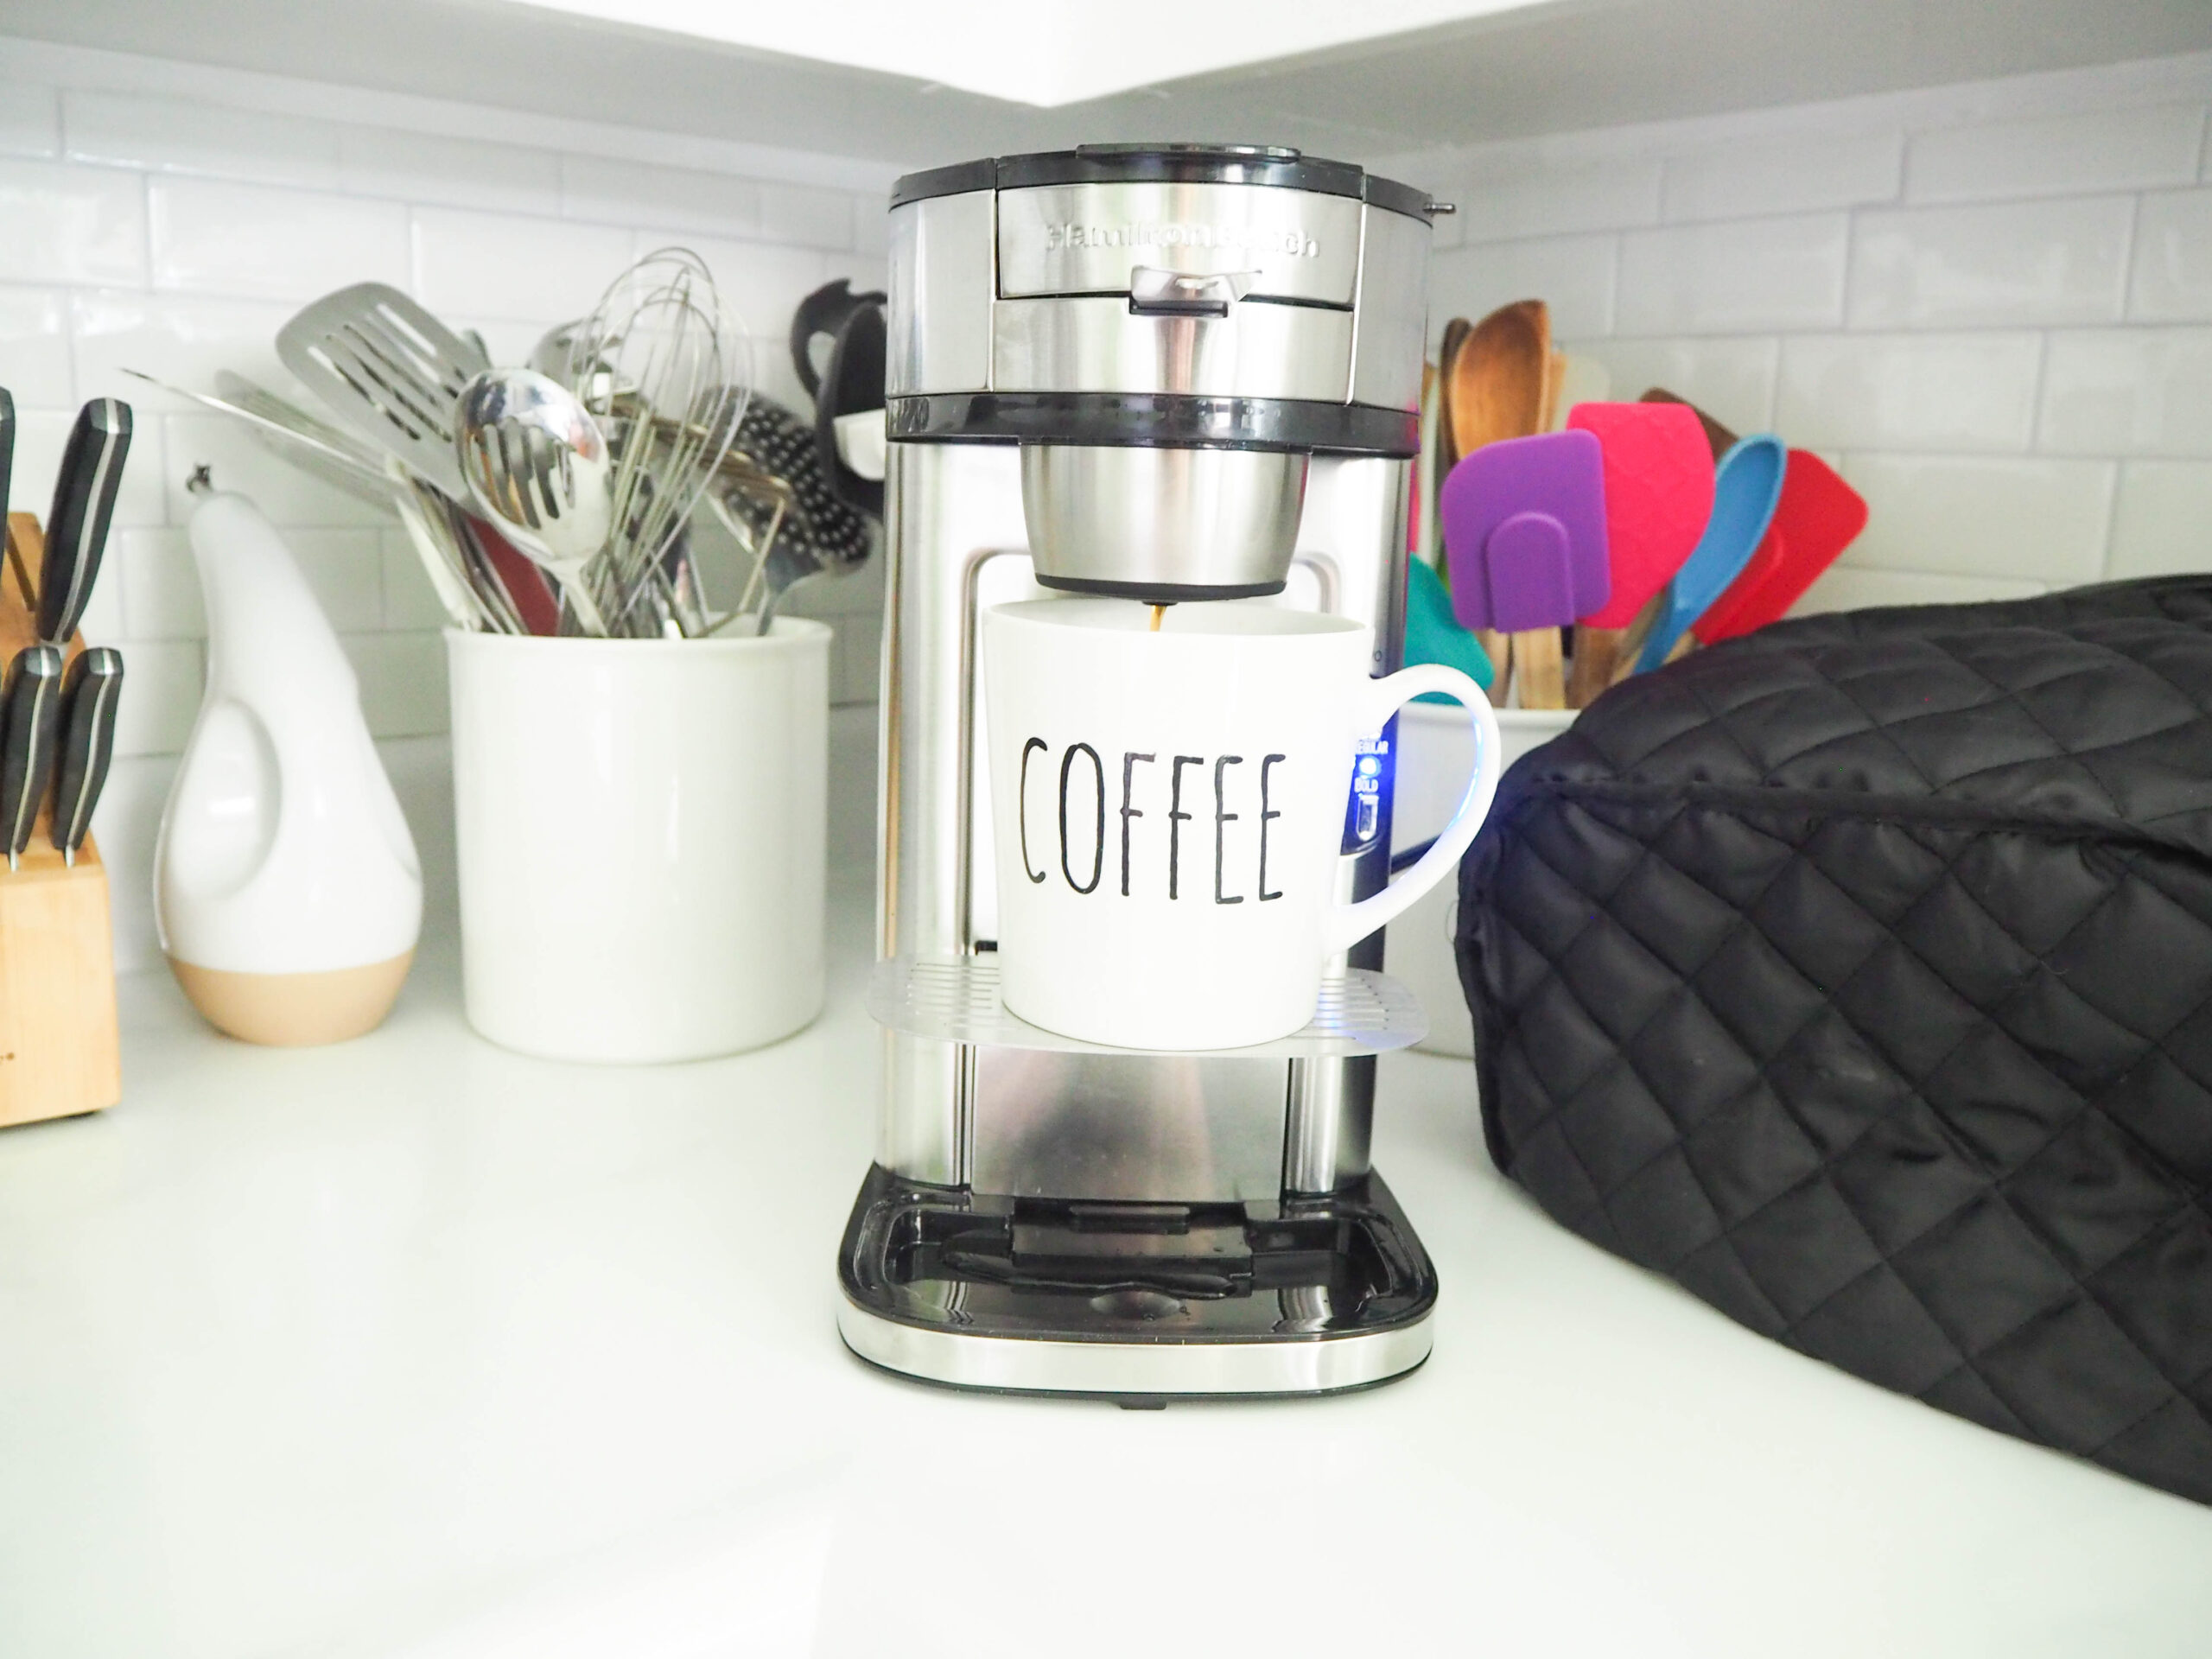 Hamilton Beach Scoop Coffeemaker